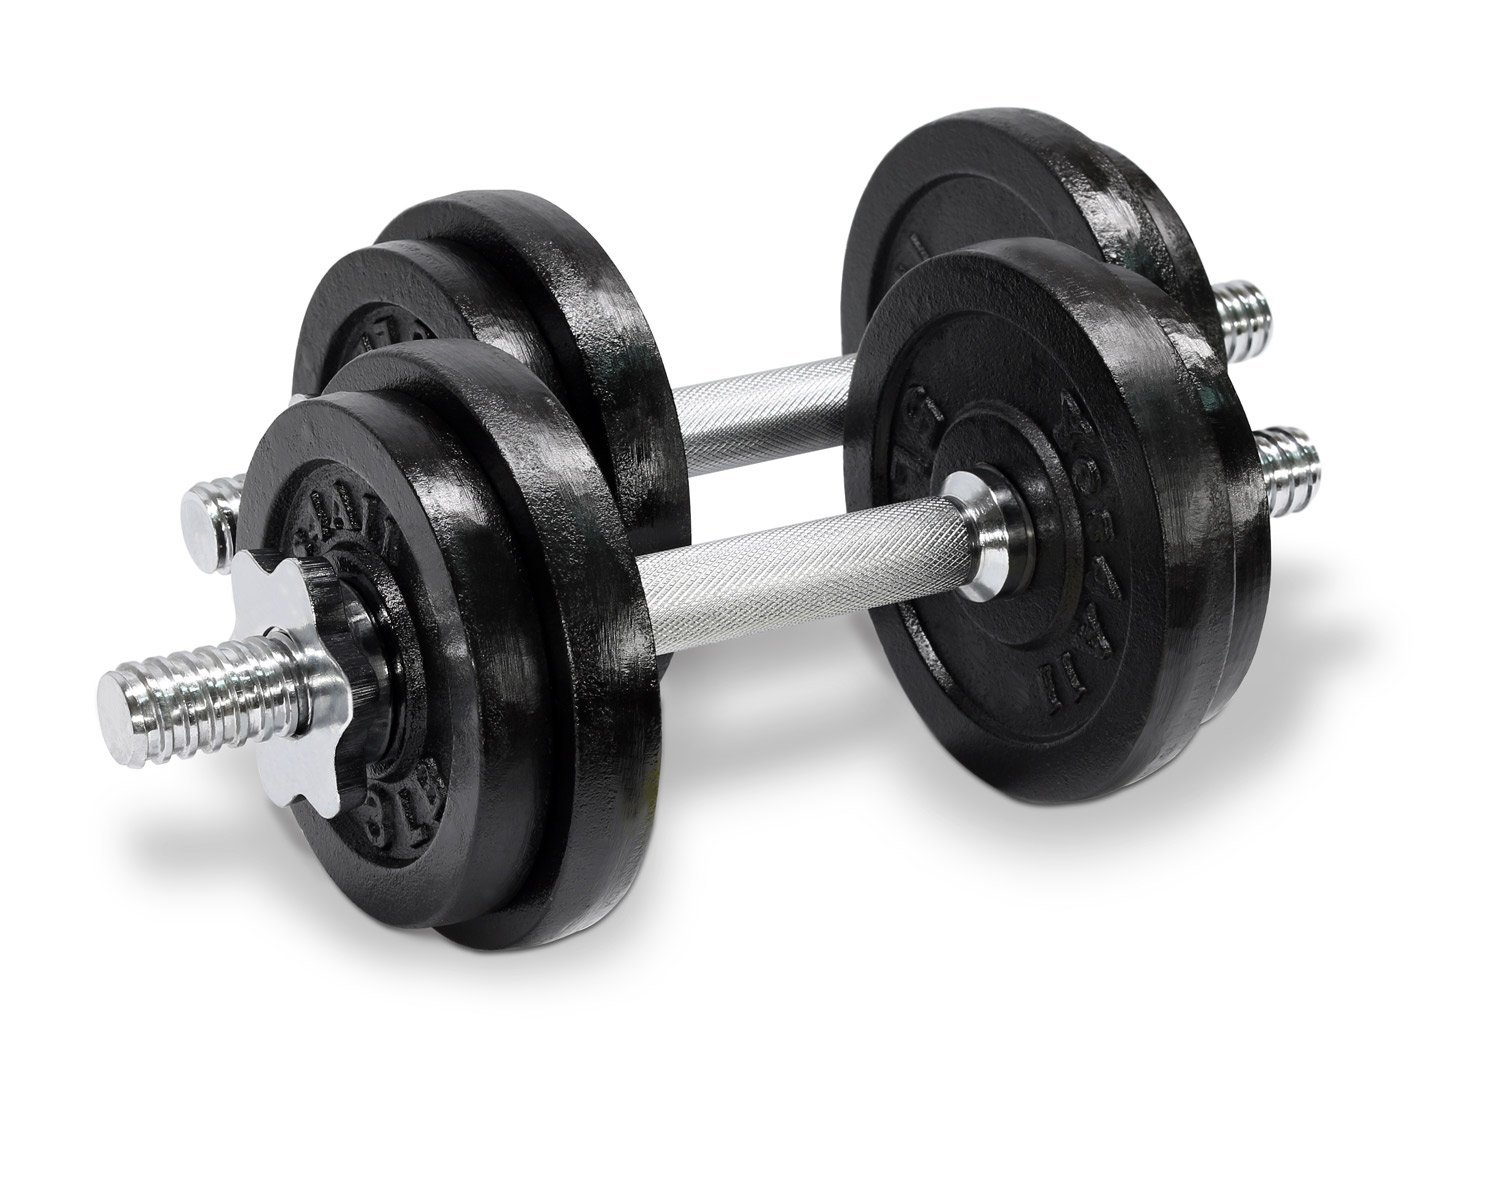 Image result for Top 5 Best Adjustable Dumbbells